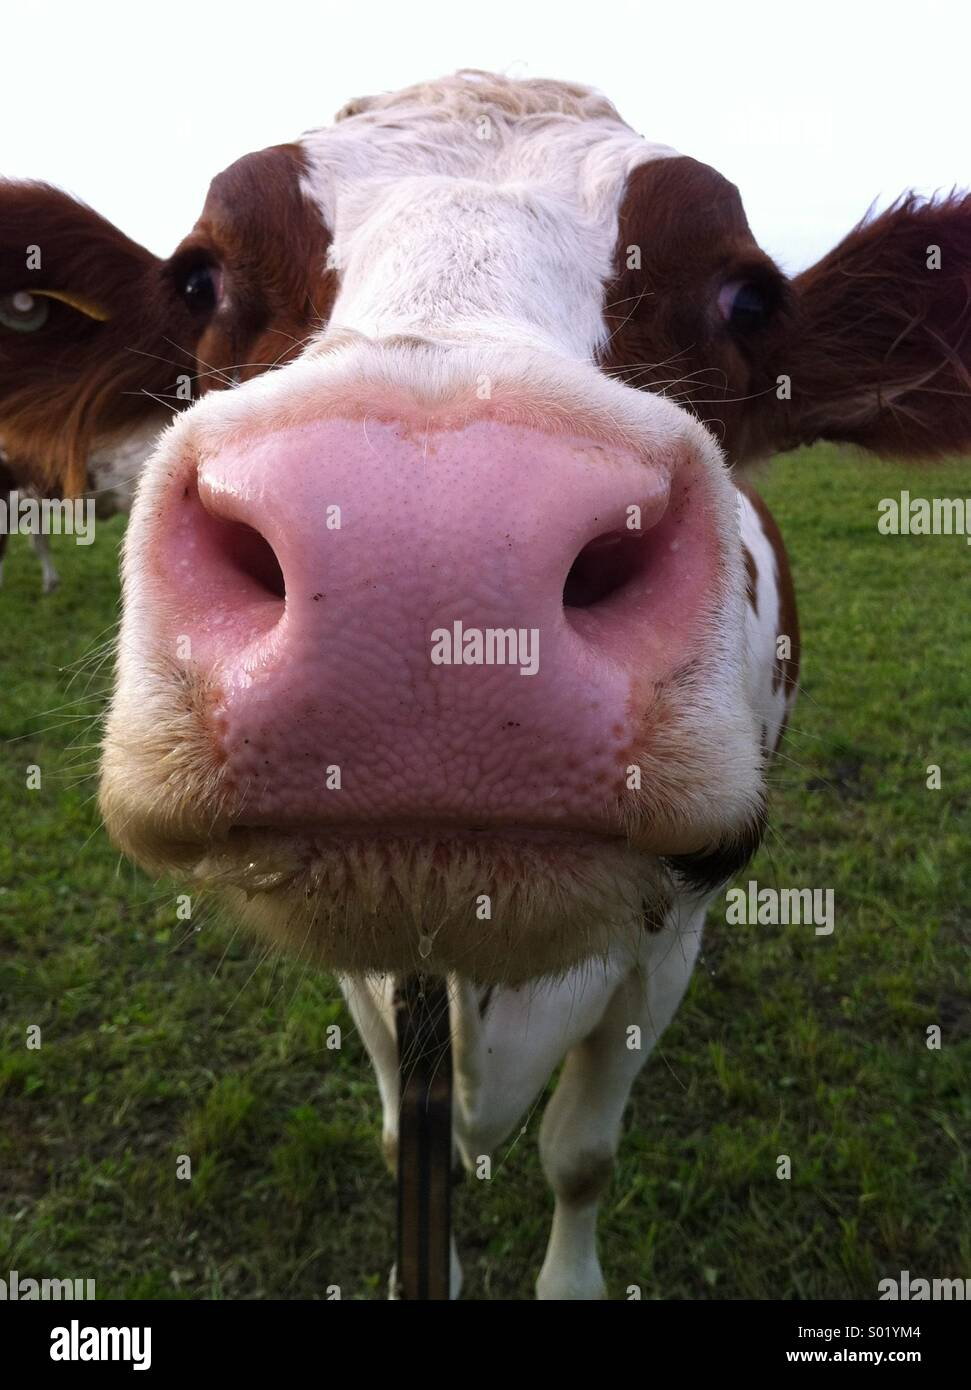 Cow close up and personal - Stock Image